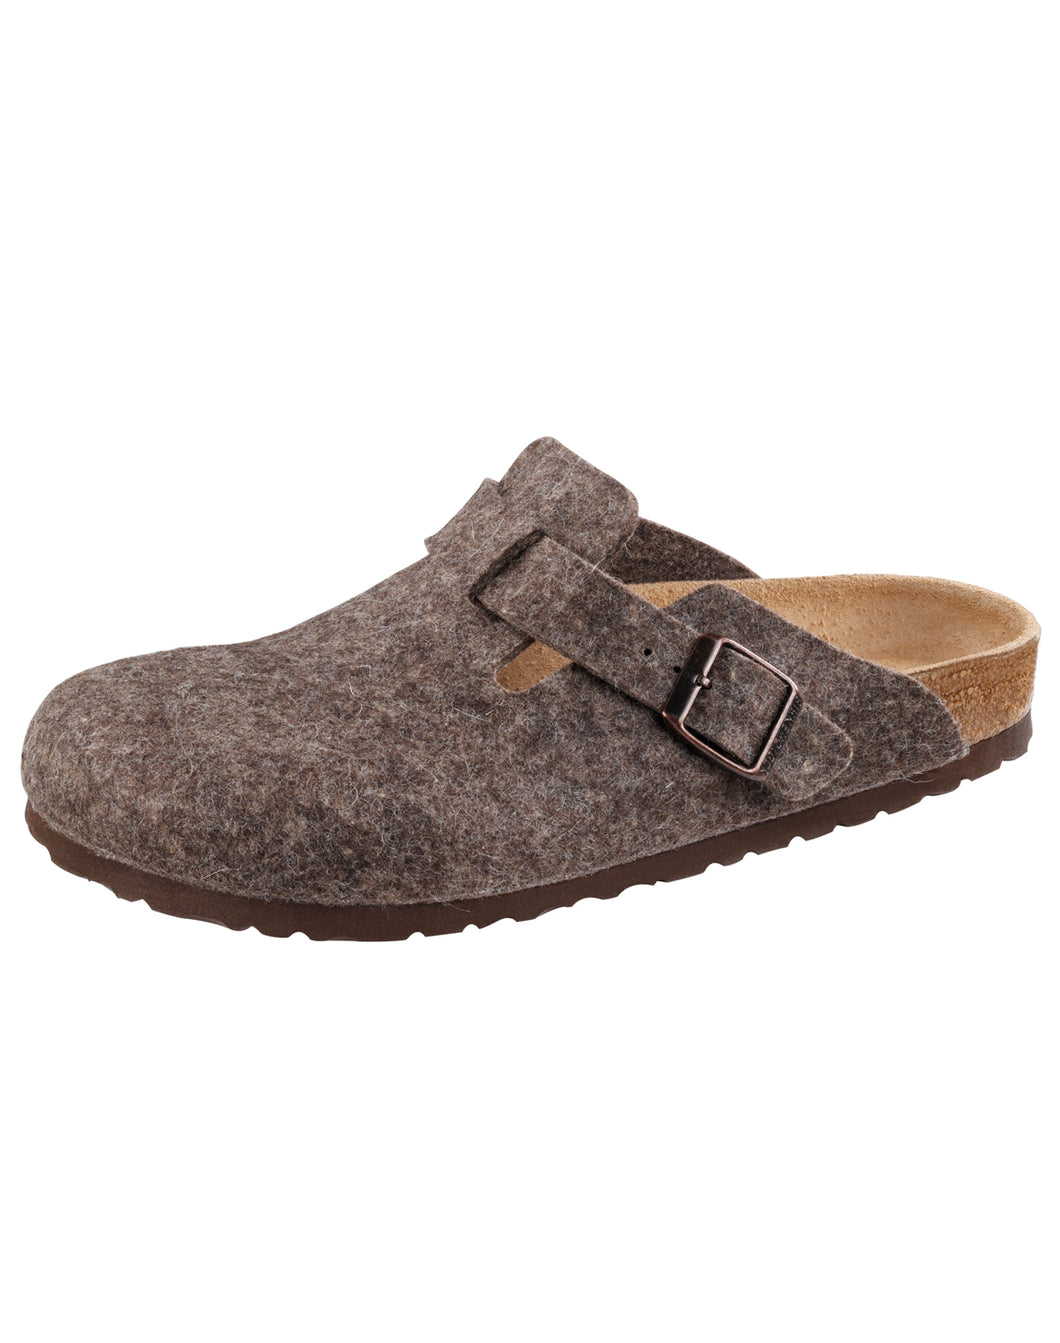 BIRKENSTOCK BOSTON COCOA FELT NARROW